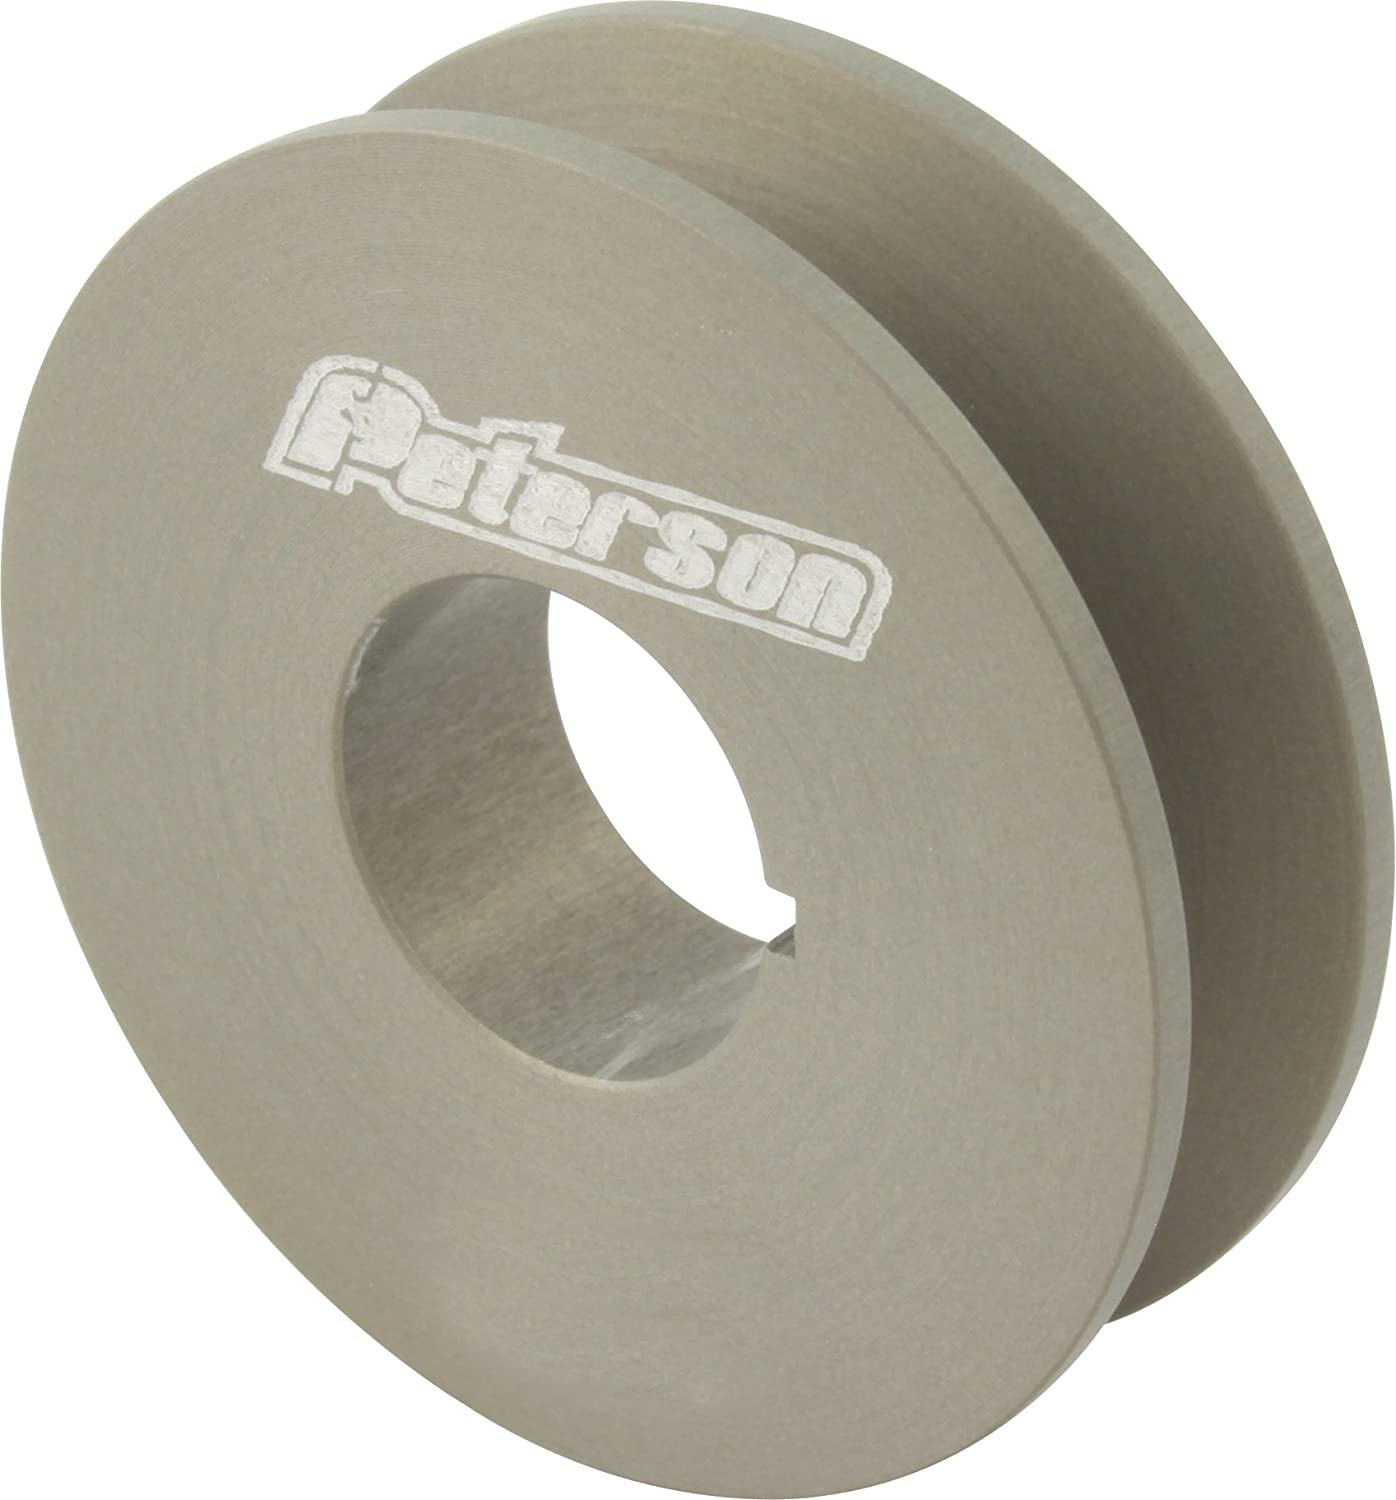 Peterson Fluid Systems 05-0529 2.5' X 1' Bore V-Groove Crank Pulley